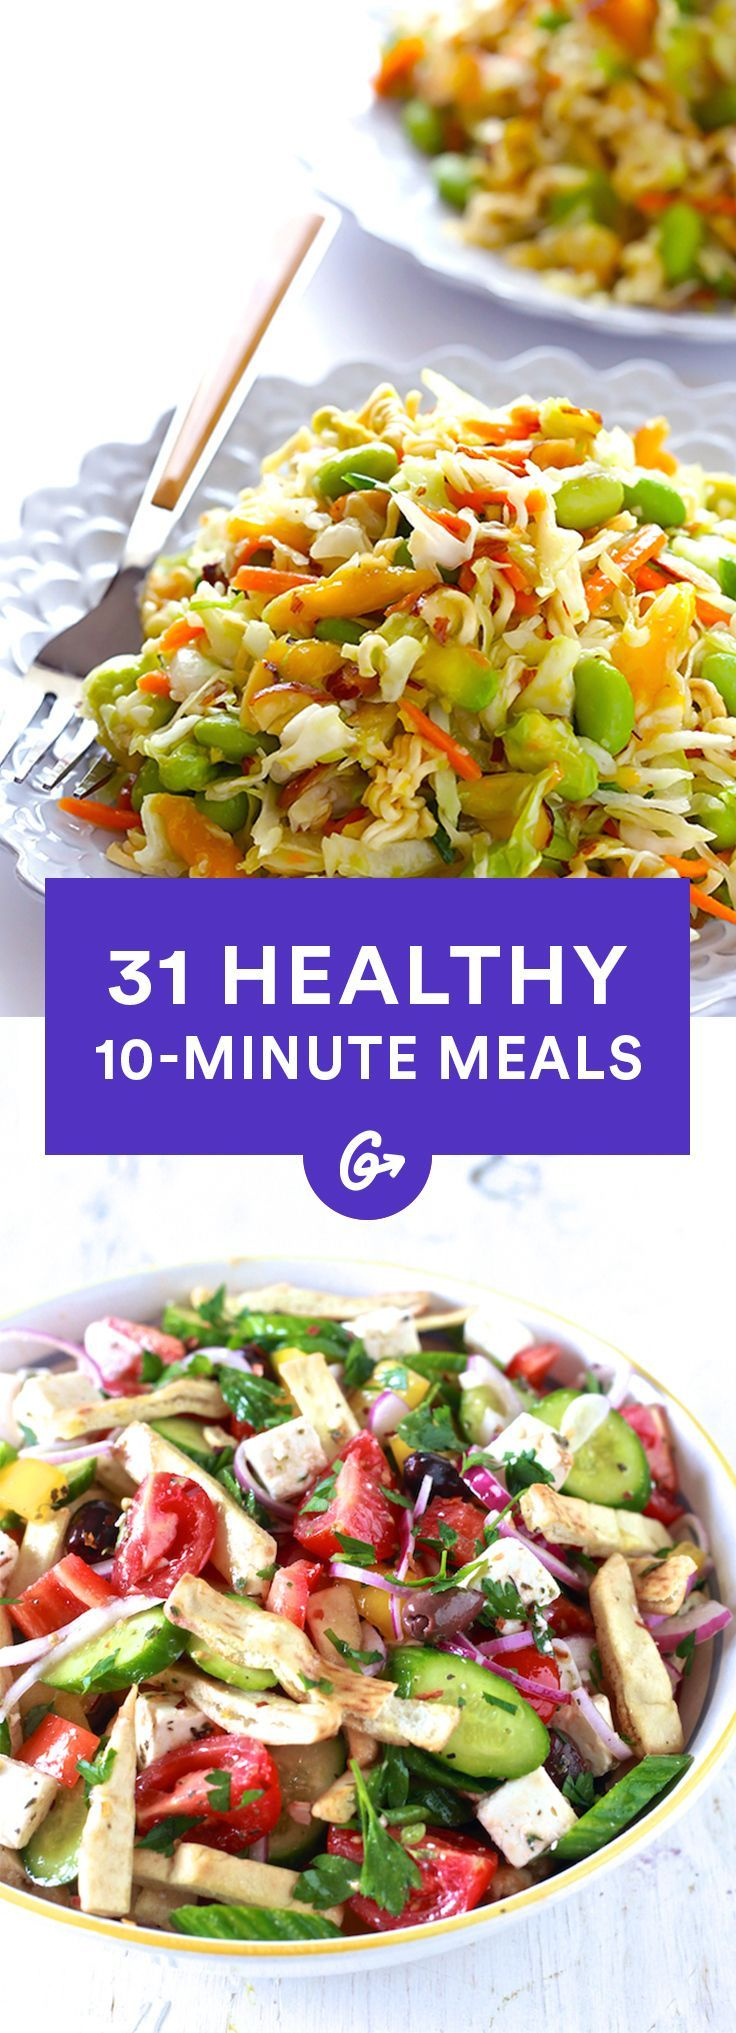 Healthy Cookout Recipes: 10-Minute Recipes—29 Healthy, Fast Meals (With Images